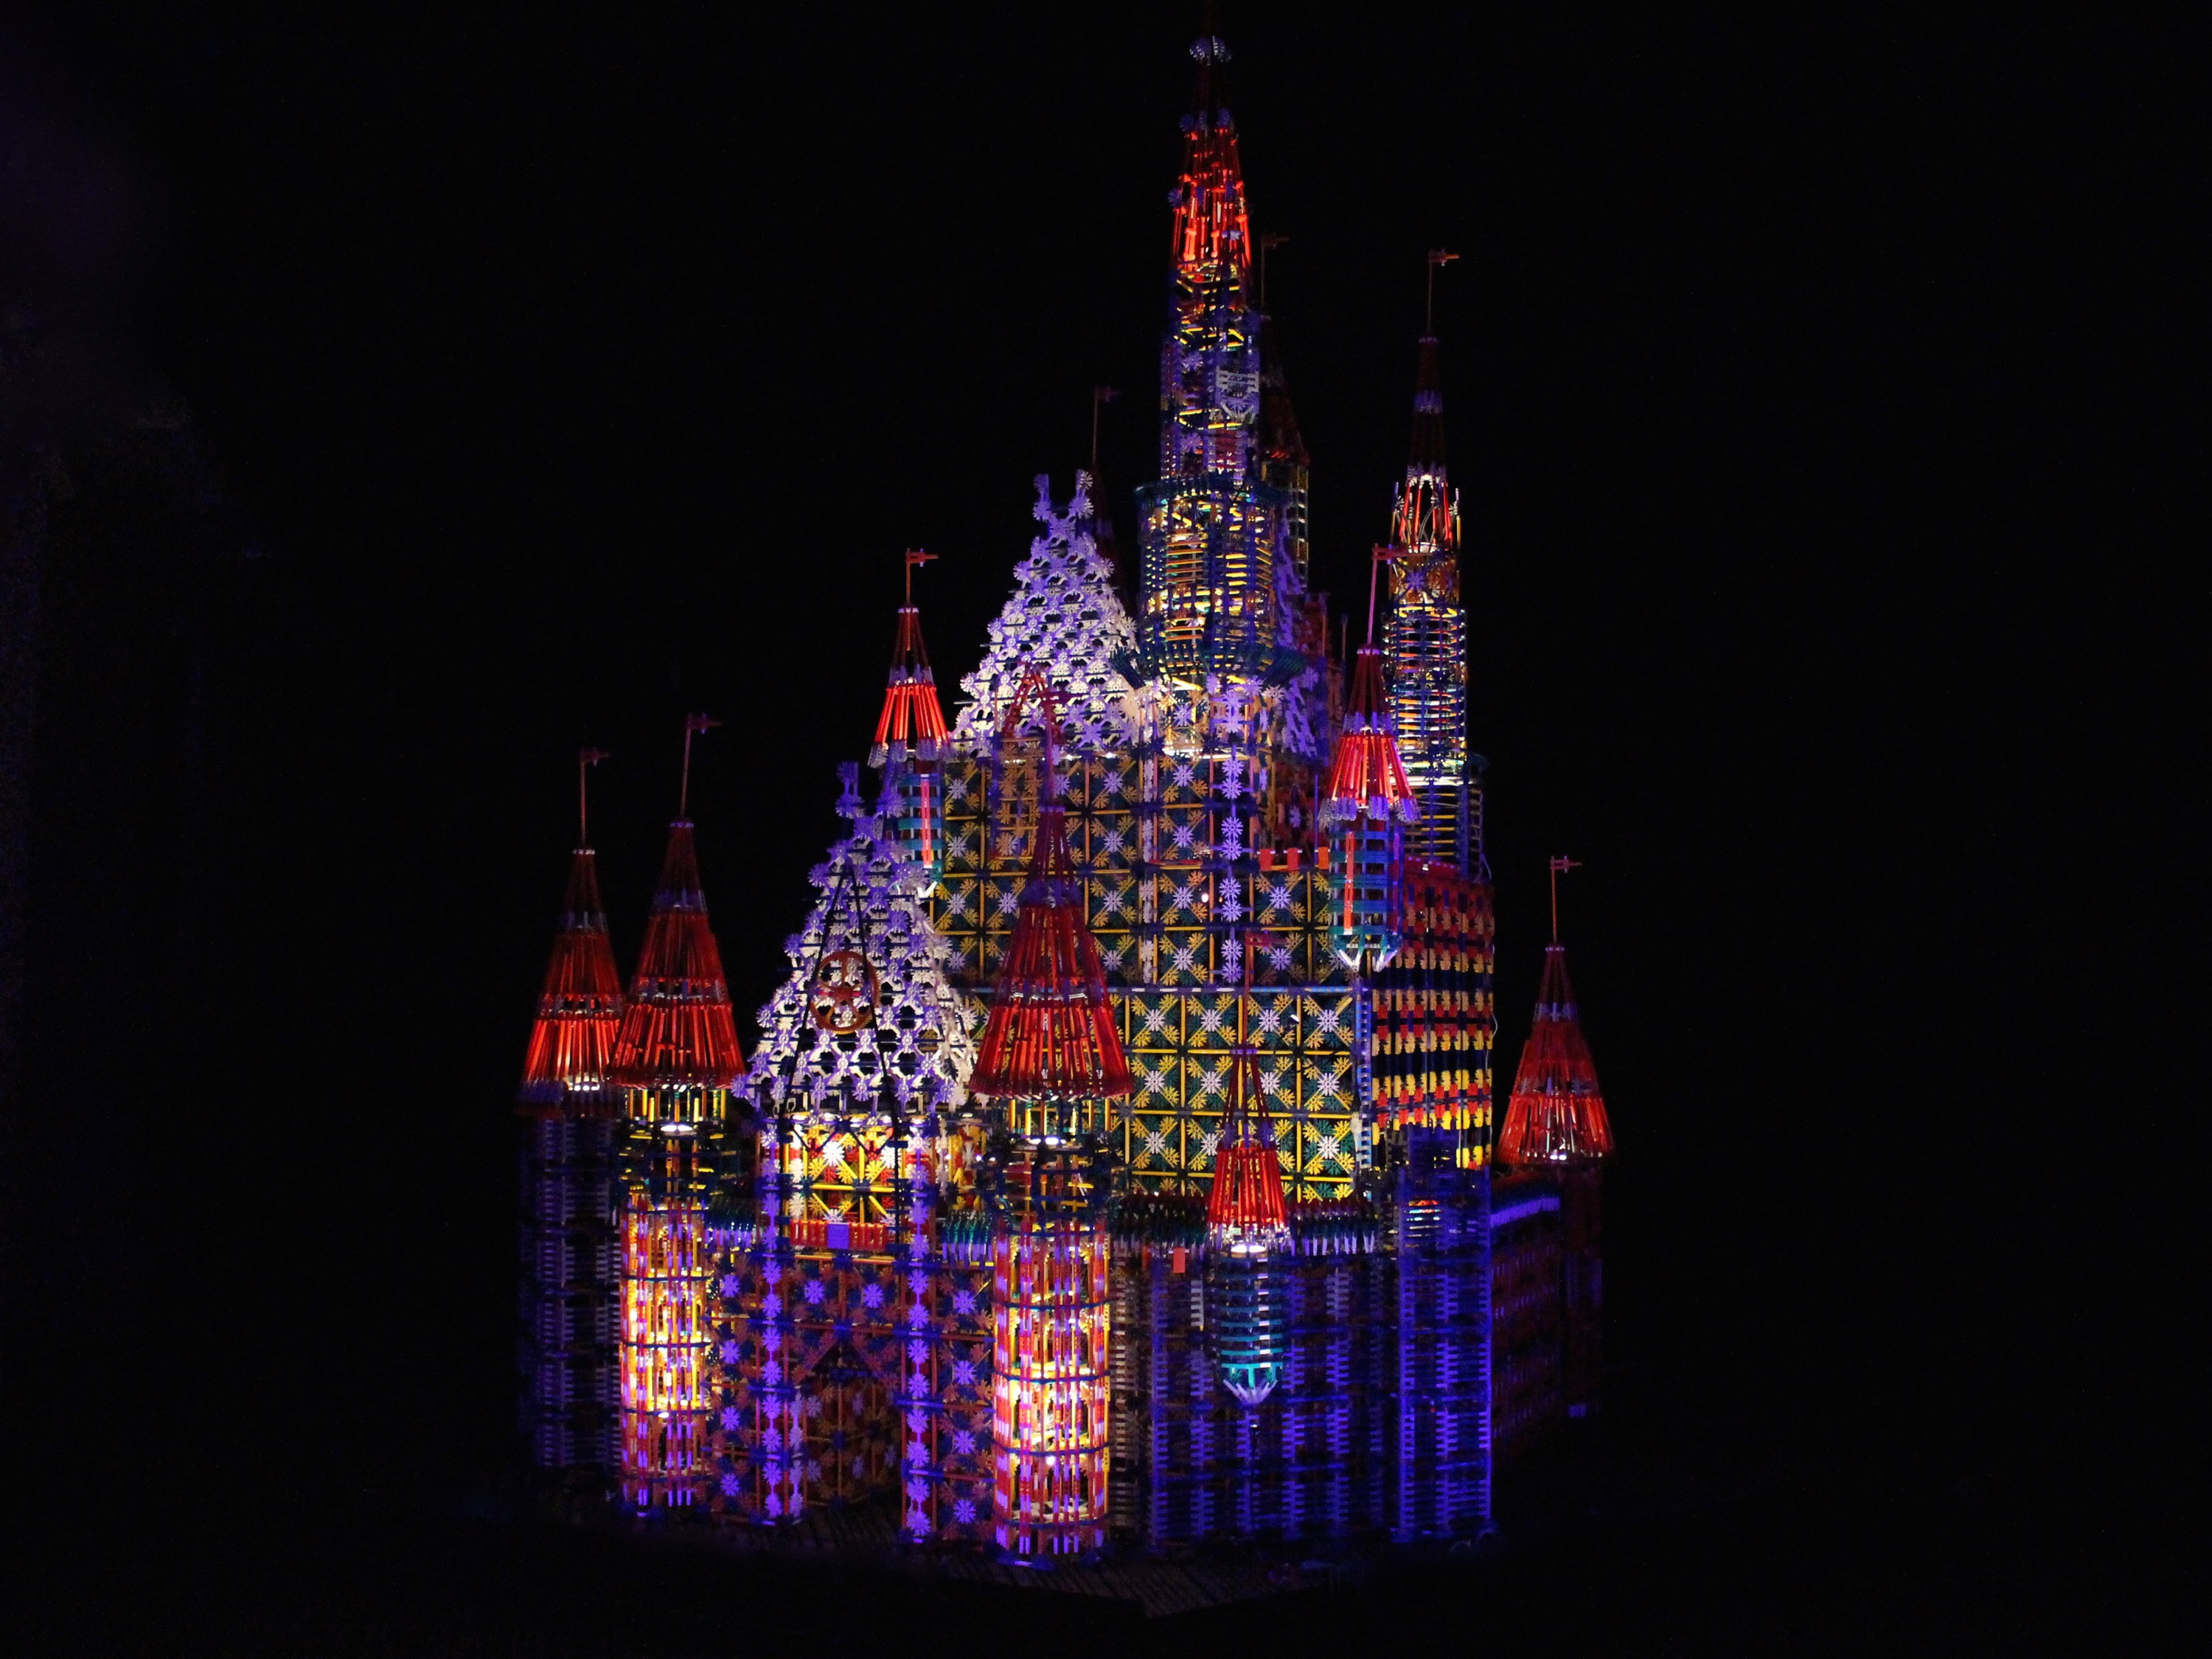 The castle in it's final lighting state